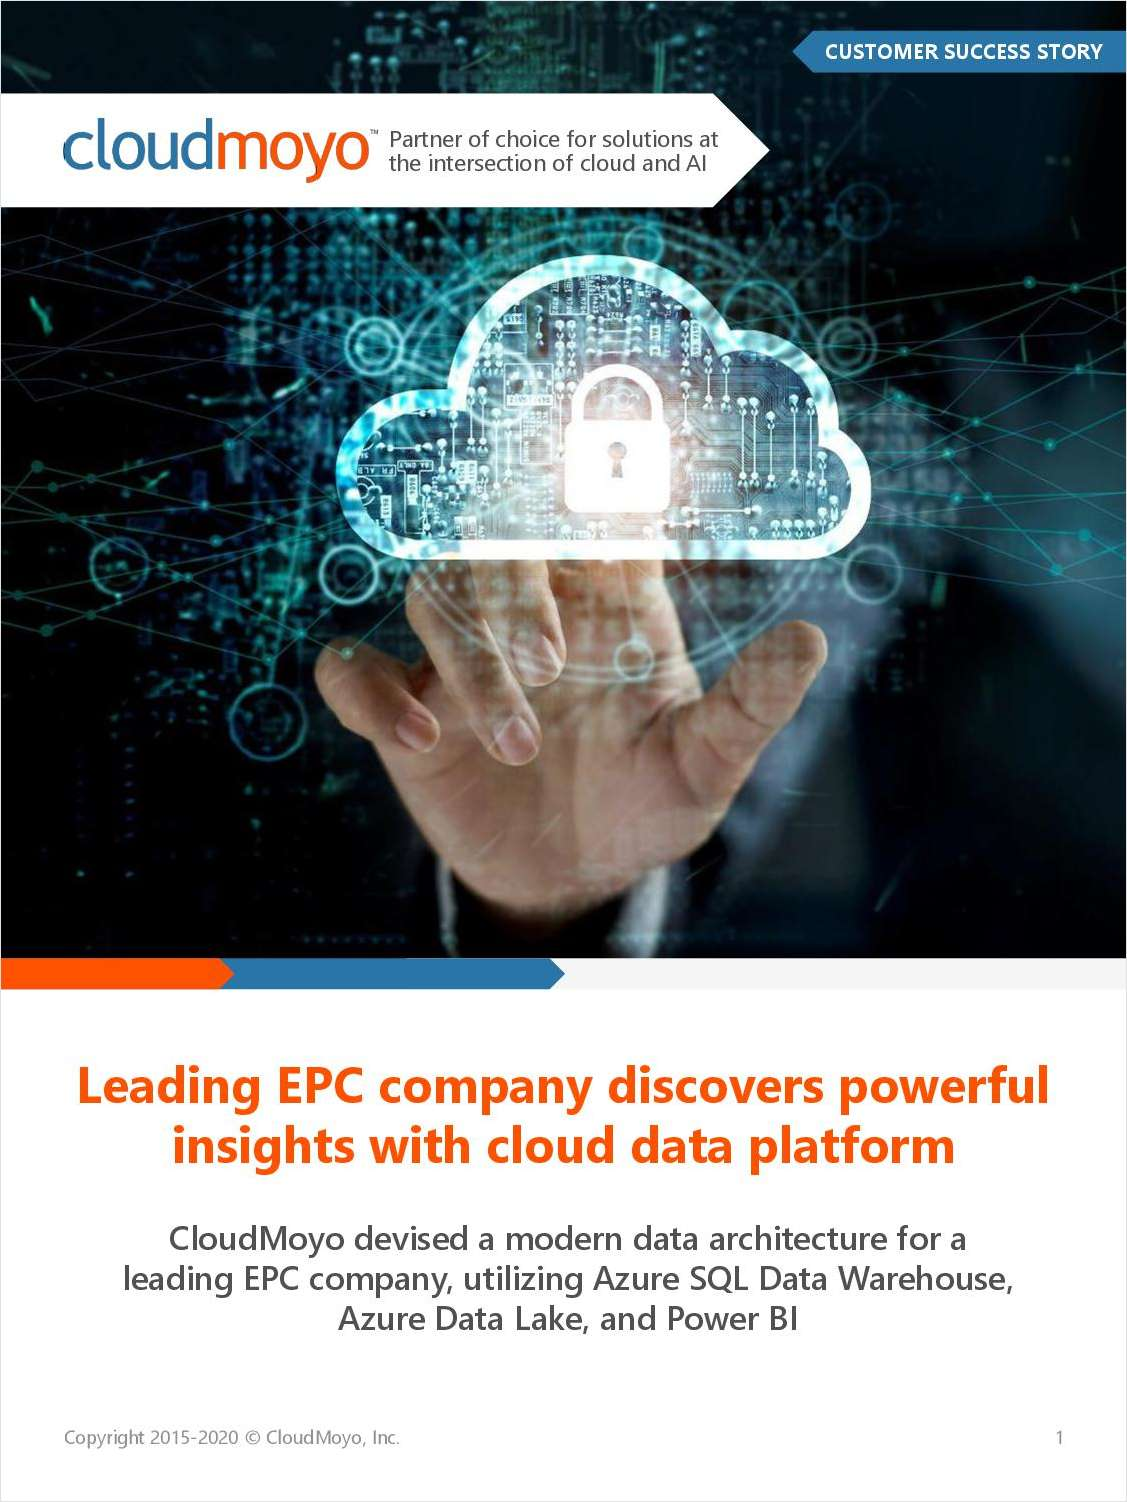 Leading EPC Company Discovers Powerful Insights with Cloud Data Platform